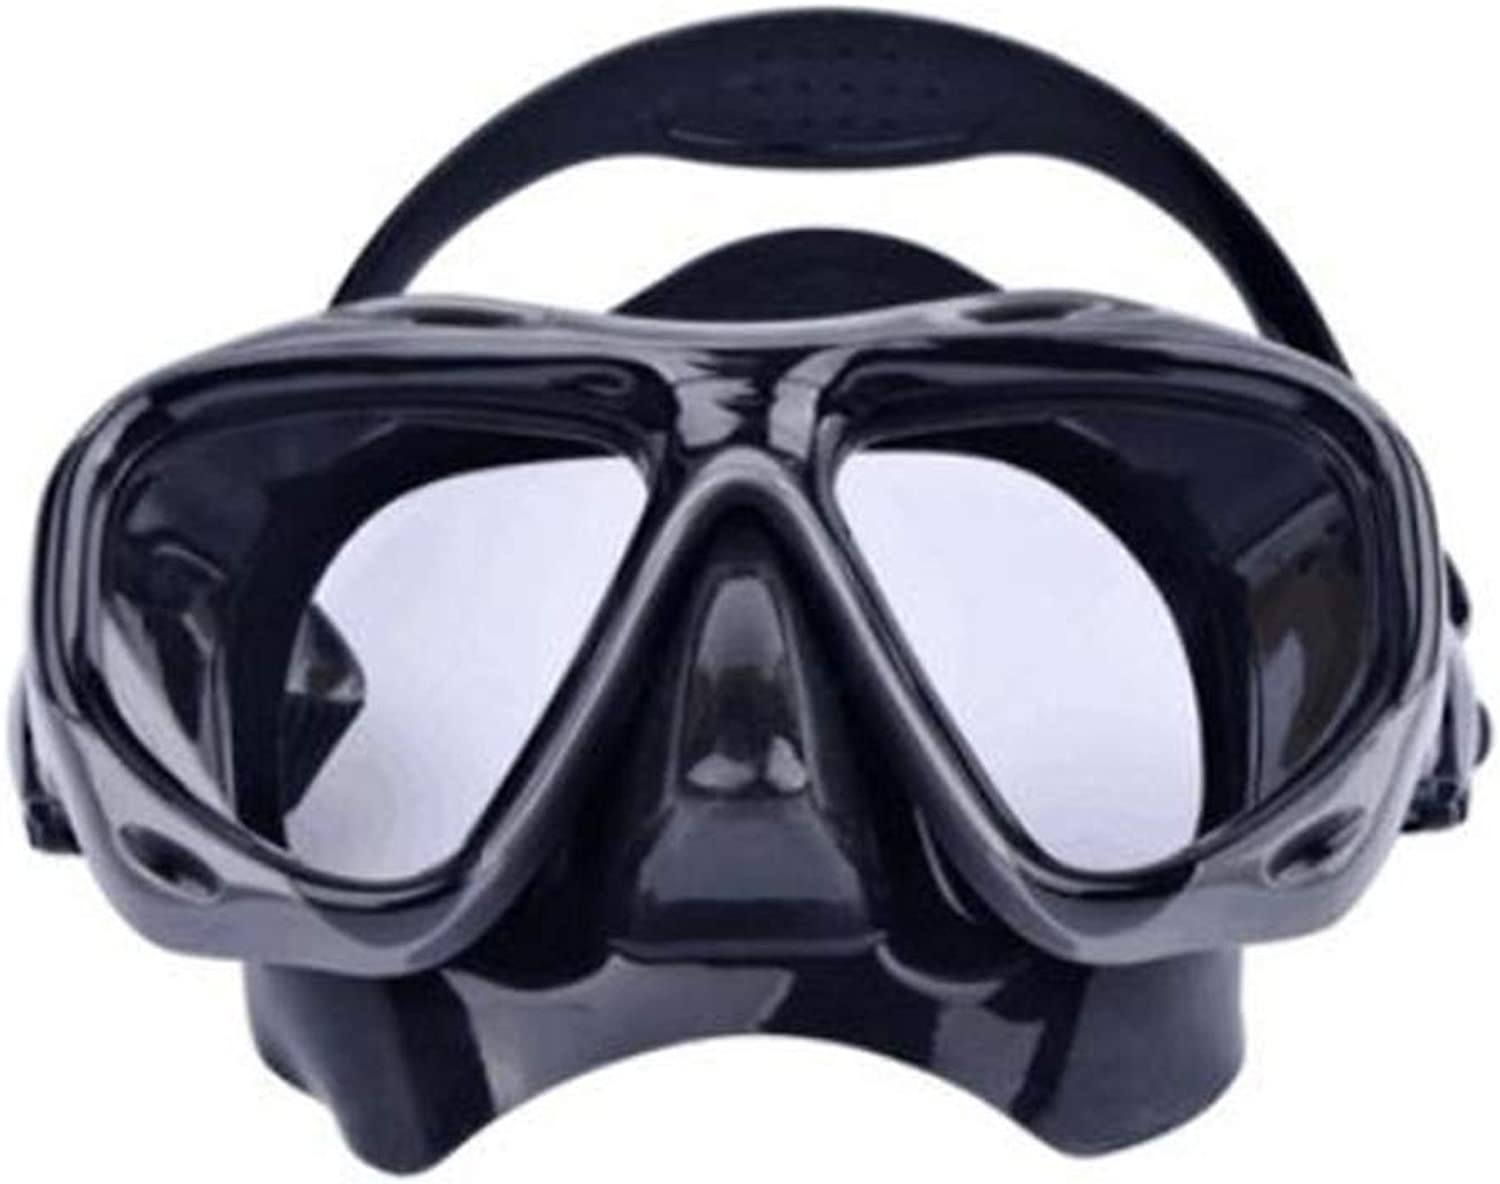 WERF Adult Diving Mask, Soft Silicone Perfectly Fits The Face, for Swimming, Diving